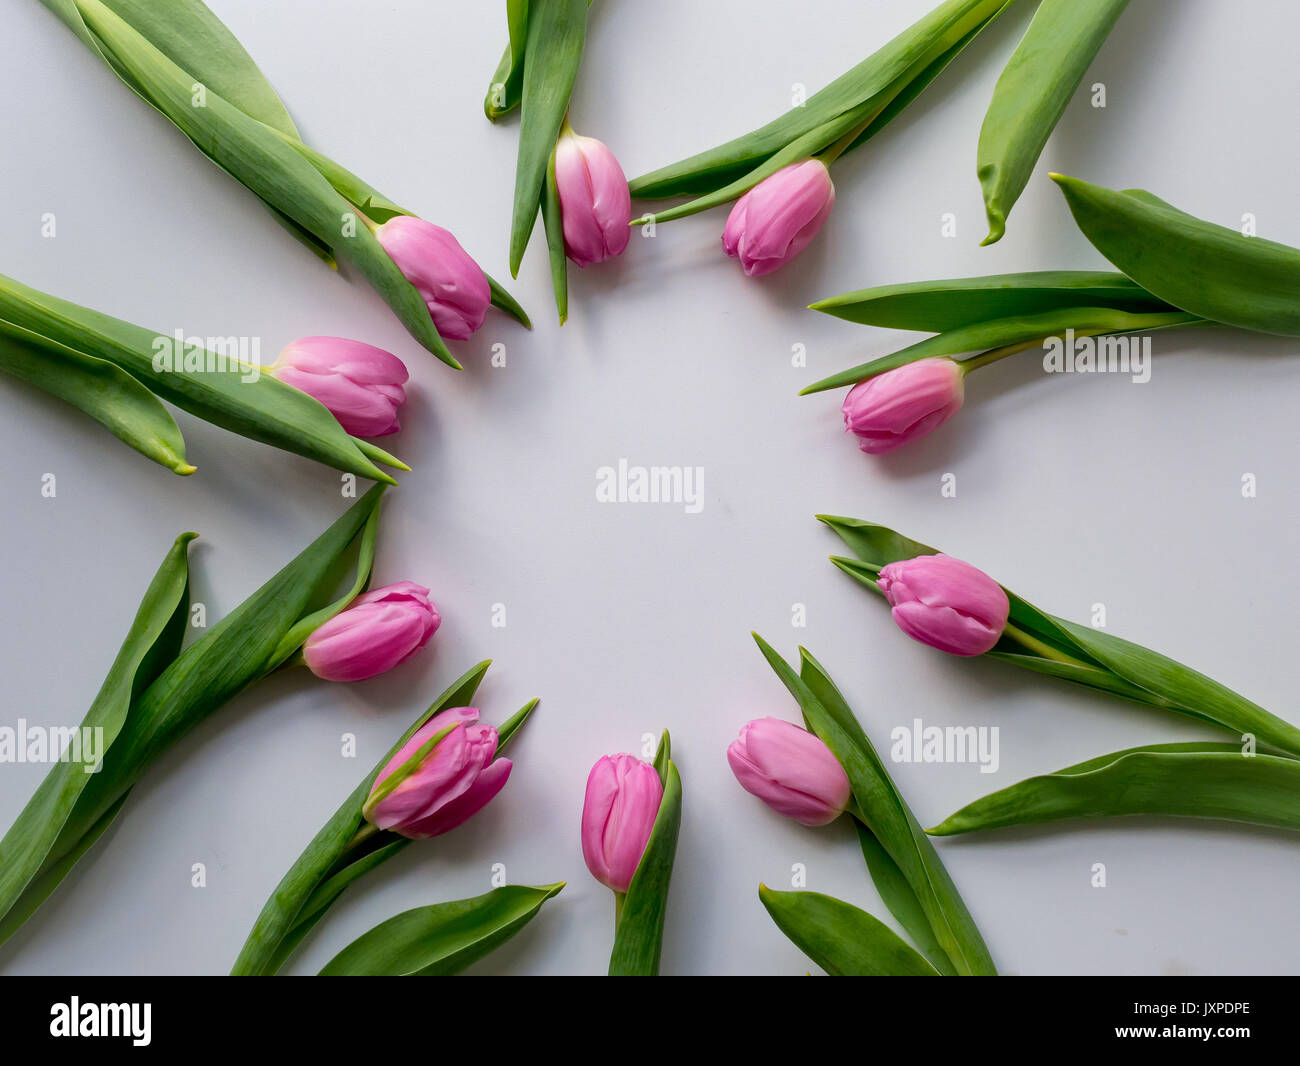 Pink tulips arranged in a circle on a white table. Flat lay. Landscape format. - Stock Image